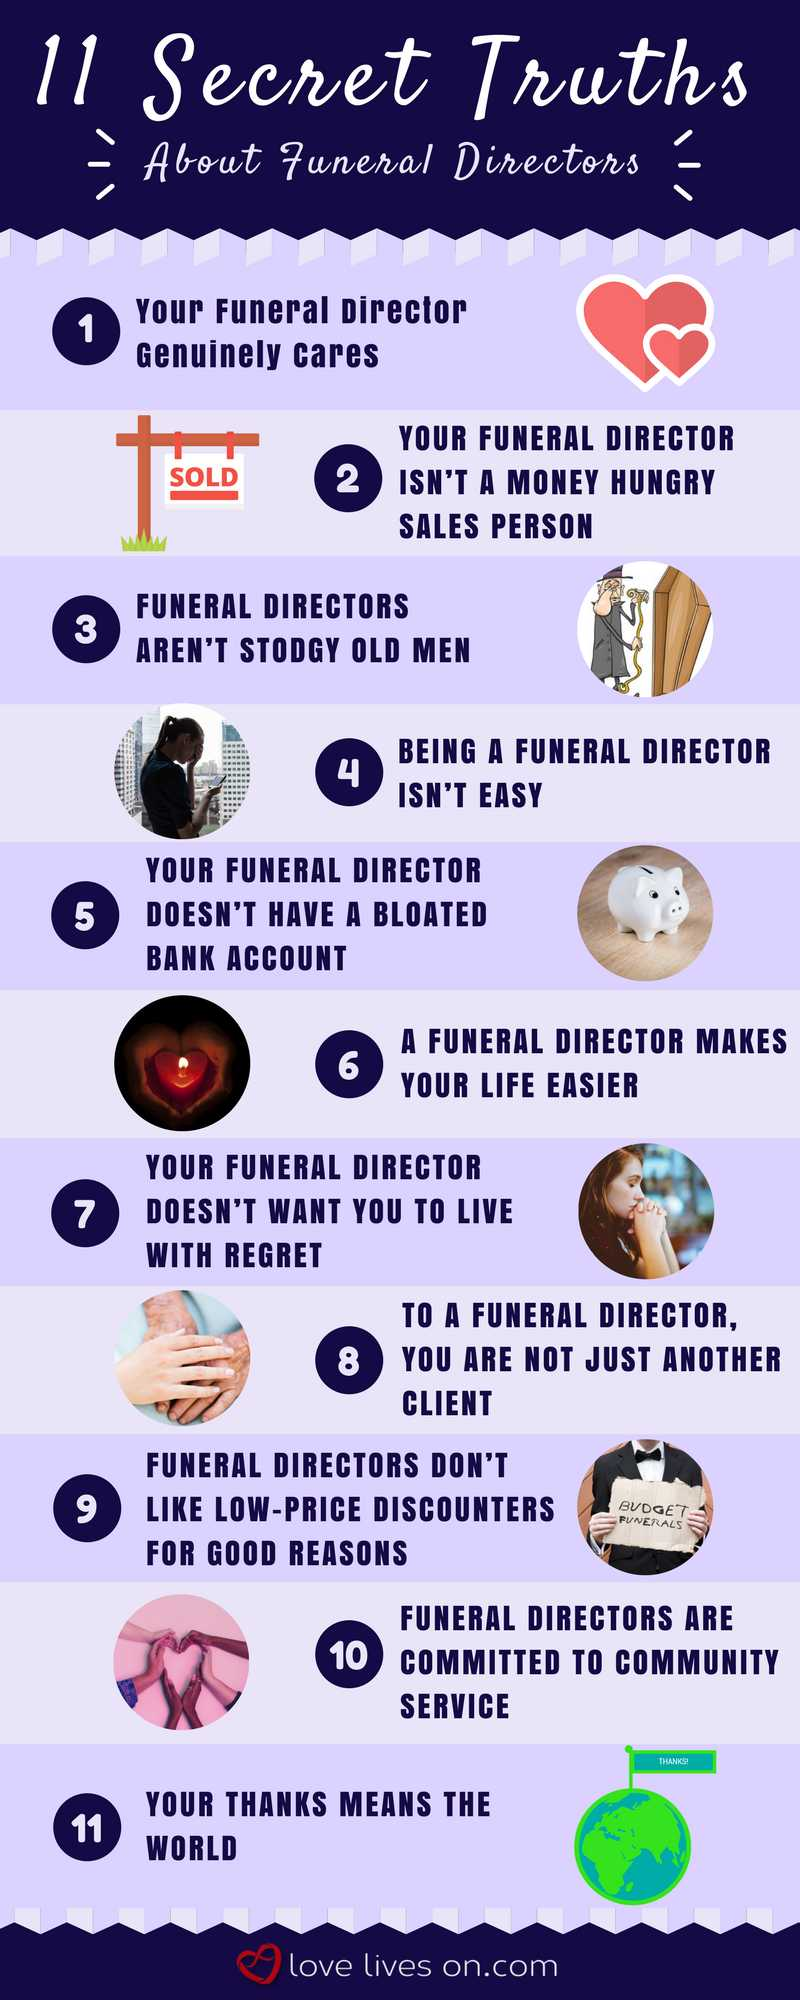 Infographic: 11 Secret Truths About Funeral Directors